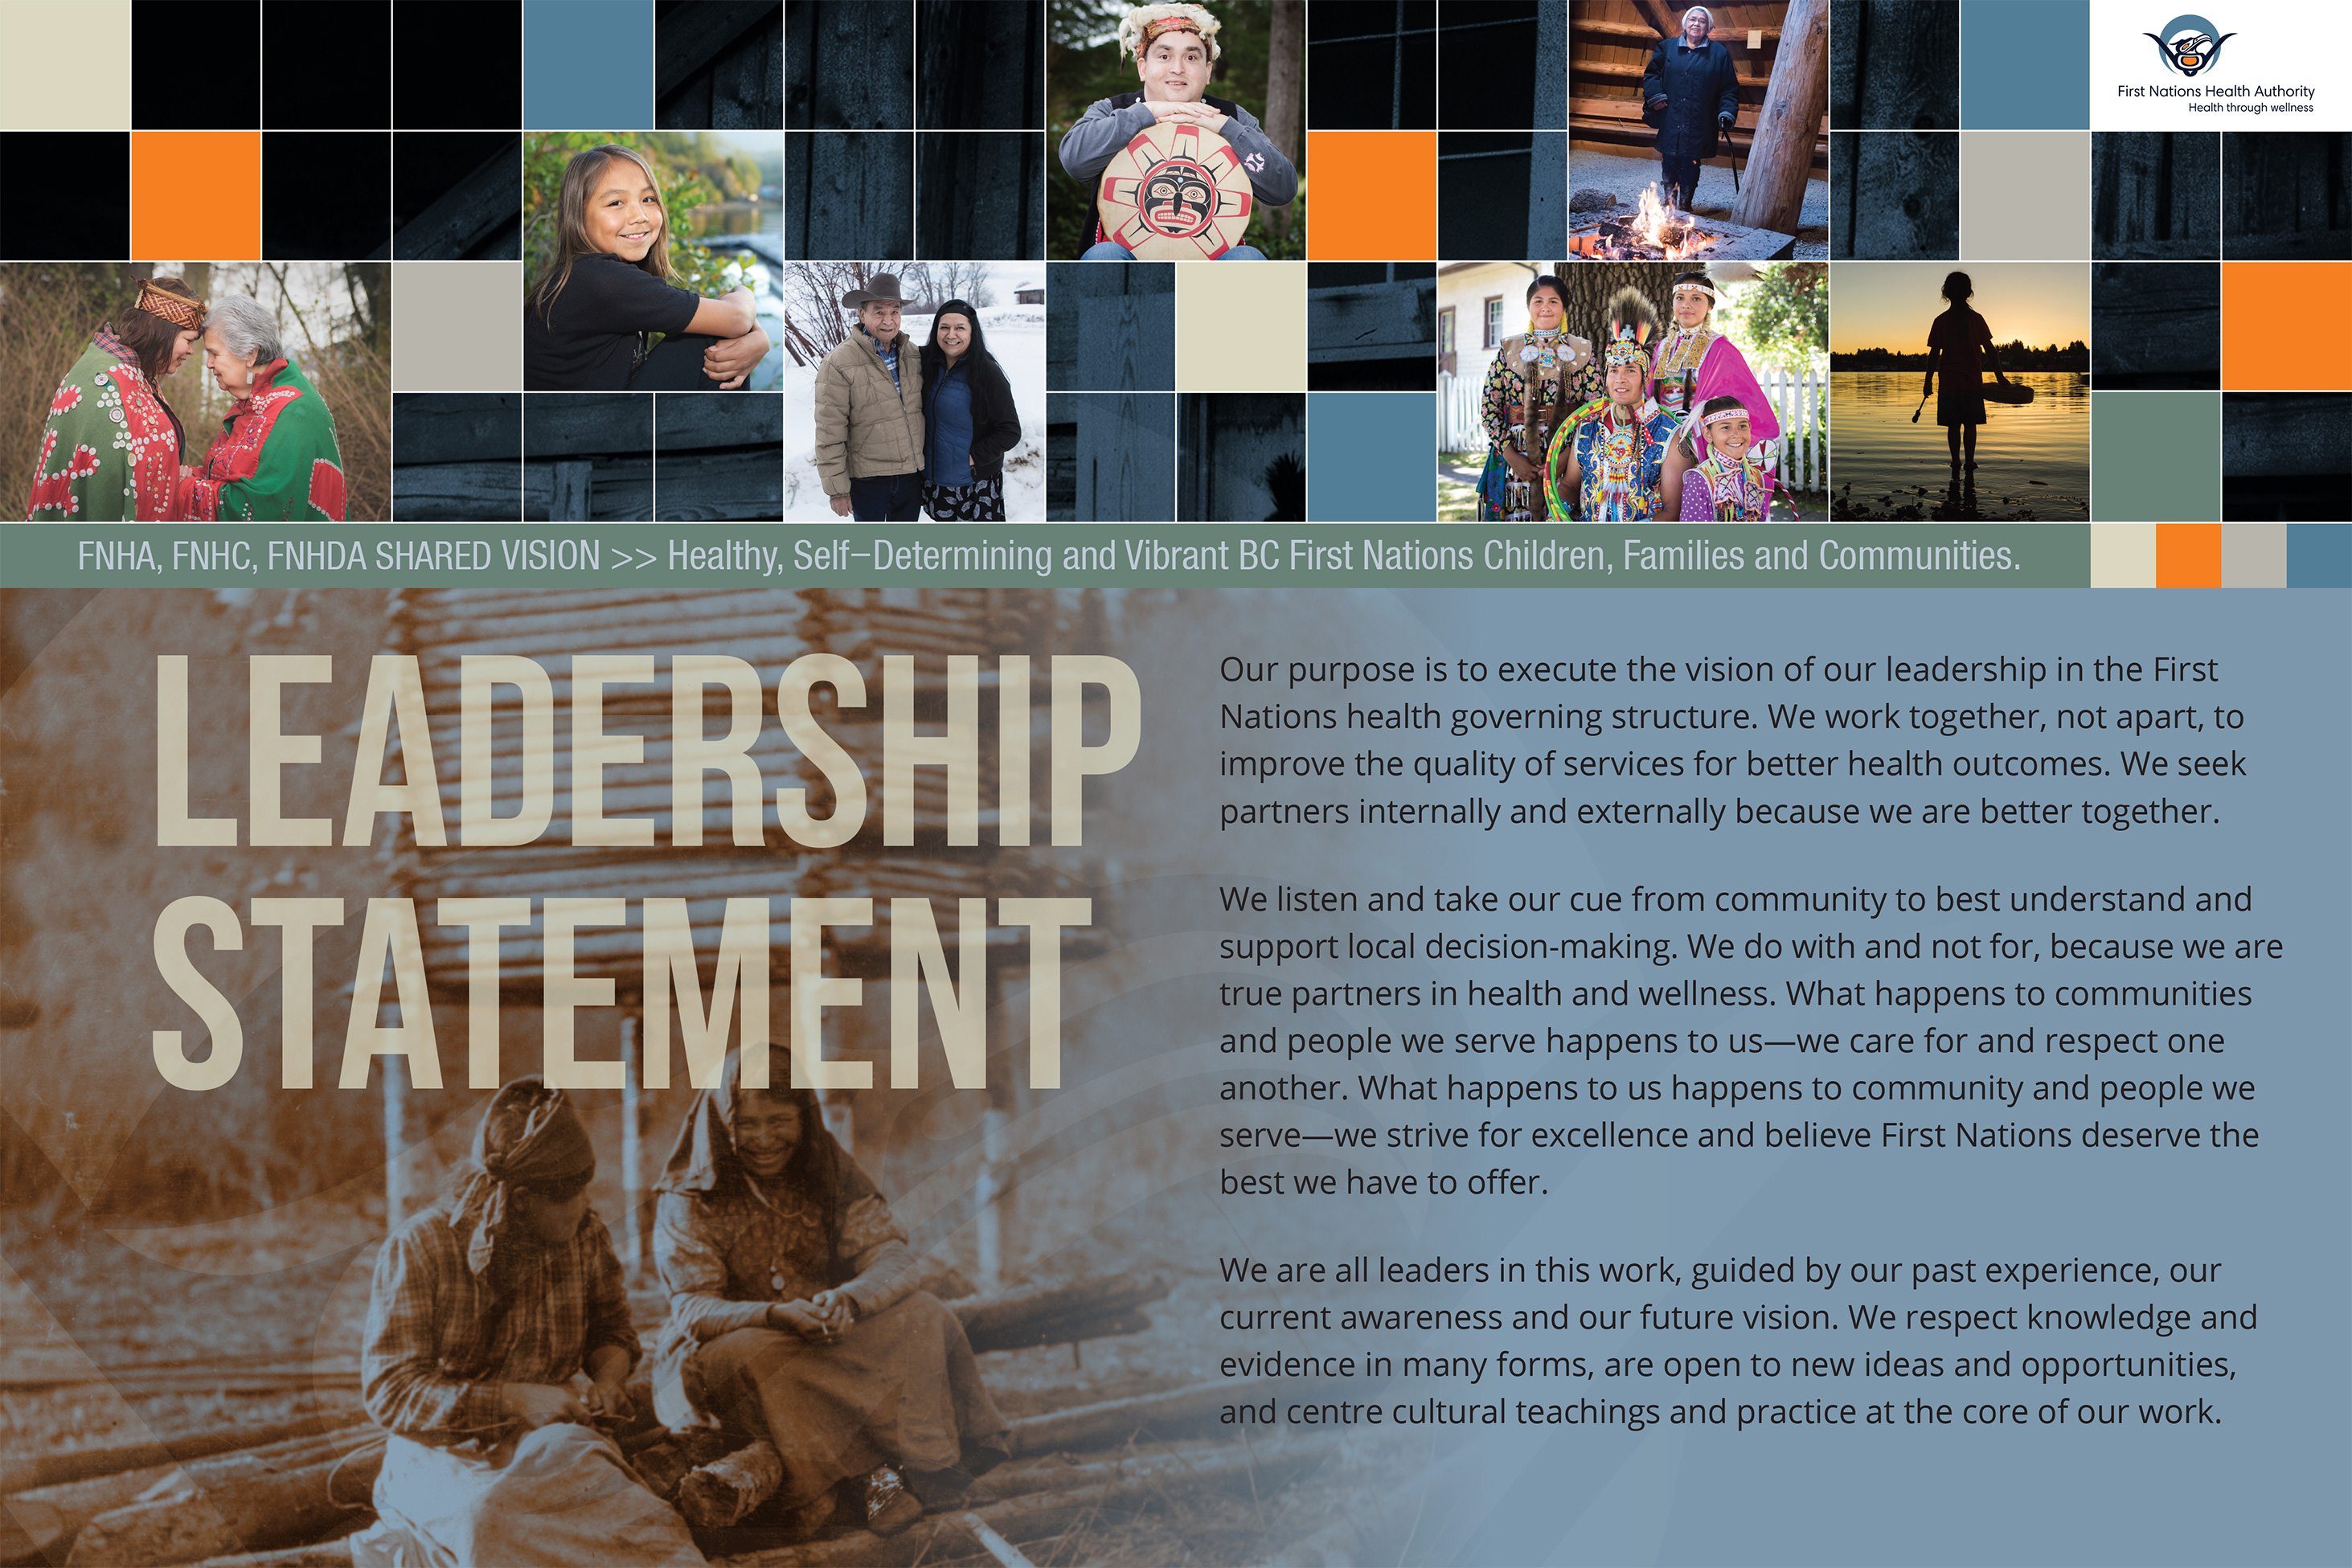 FNHA-Leadership-Statement.jpg